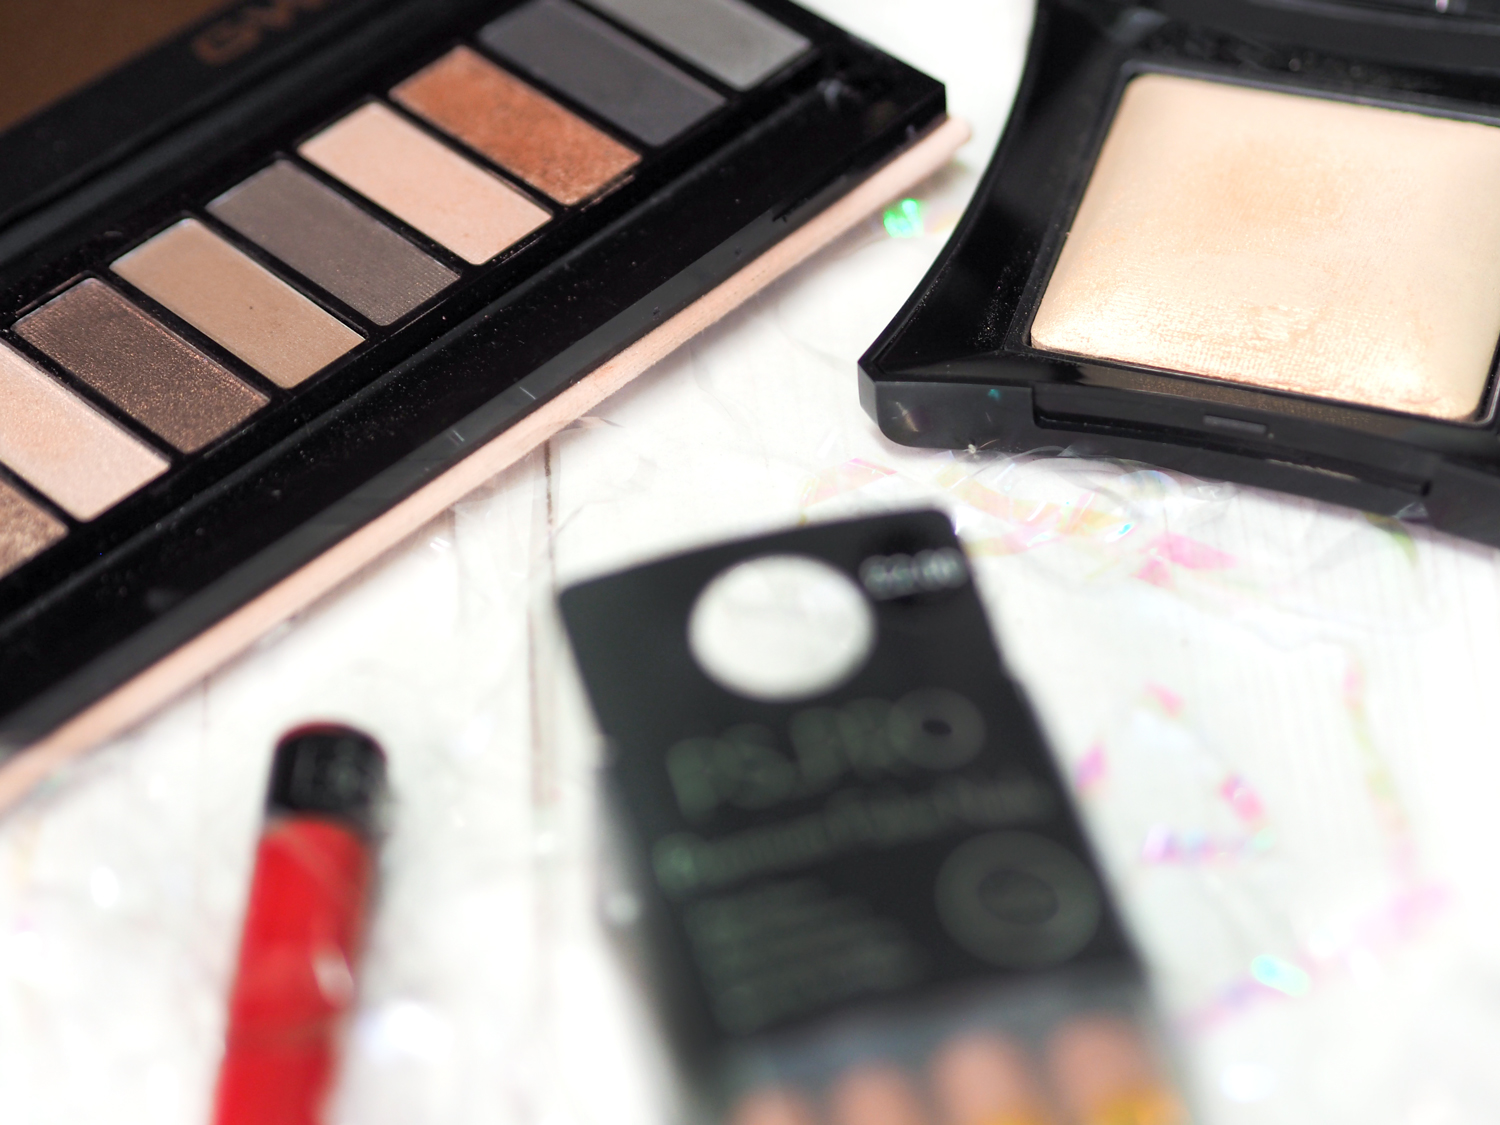 June Beauty & Lifestyle Favourites